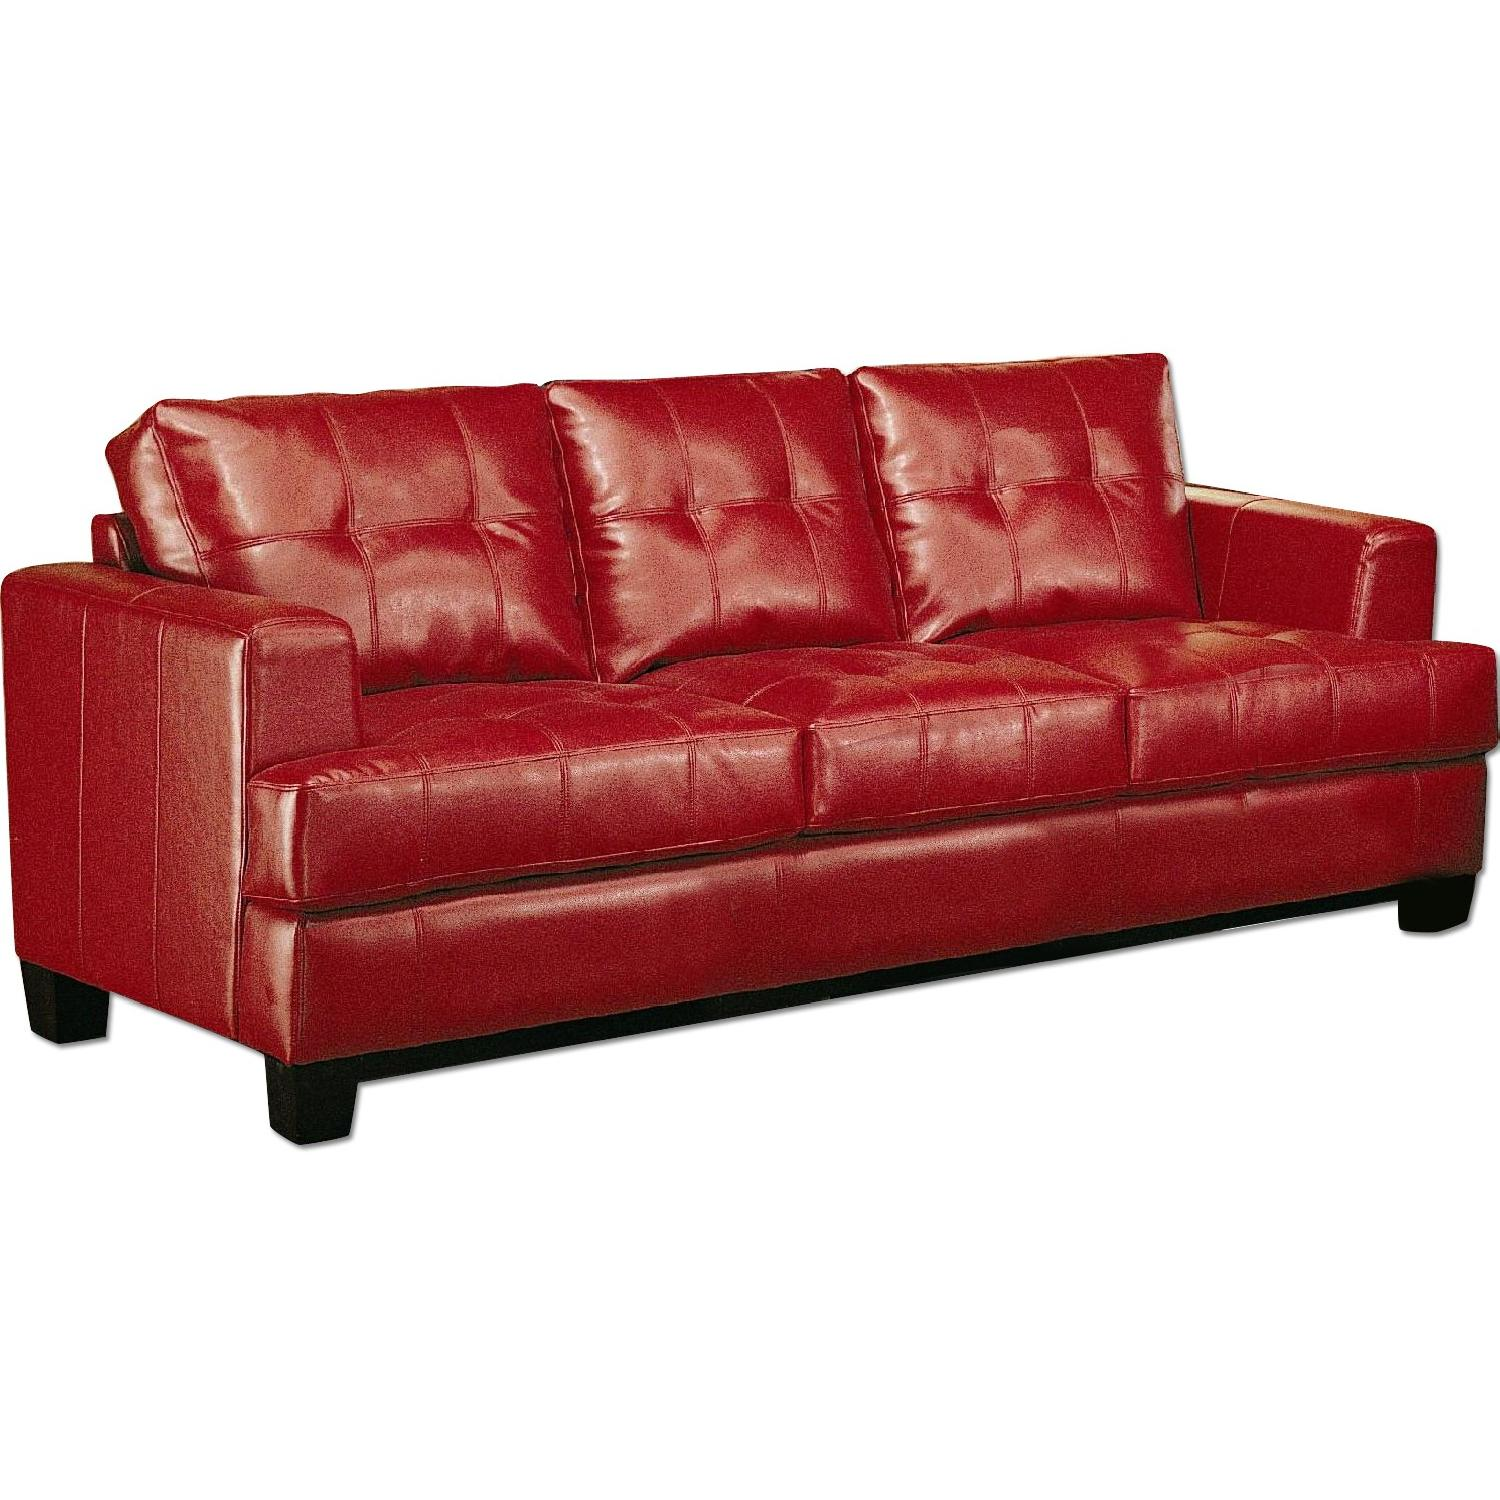 Red Bonded Leather Sofa w/ Tufted Seat & Back